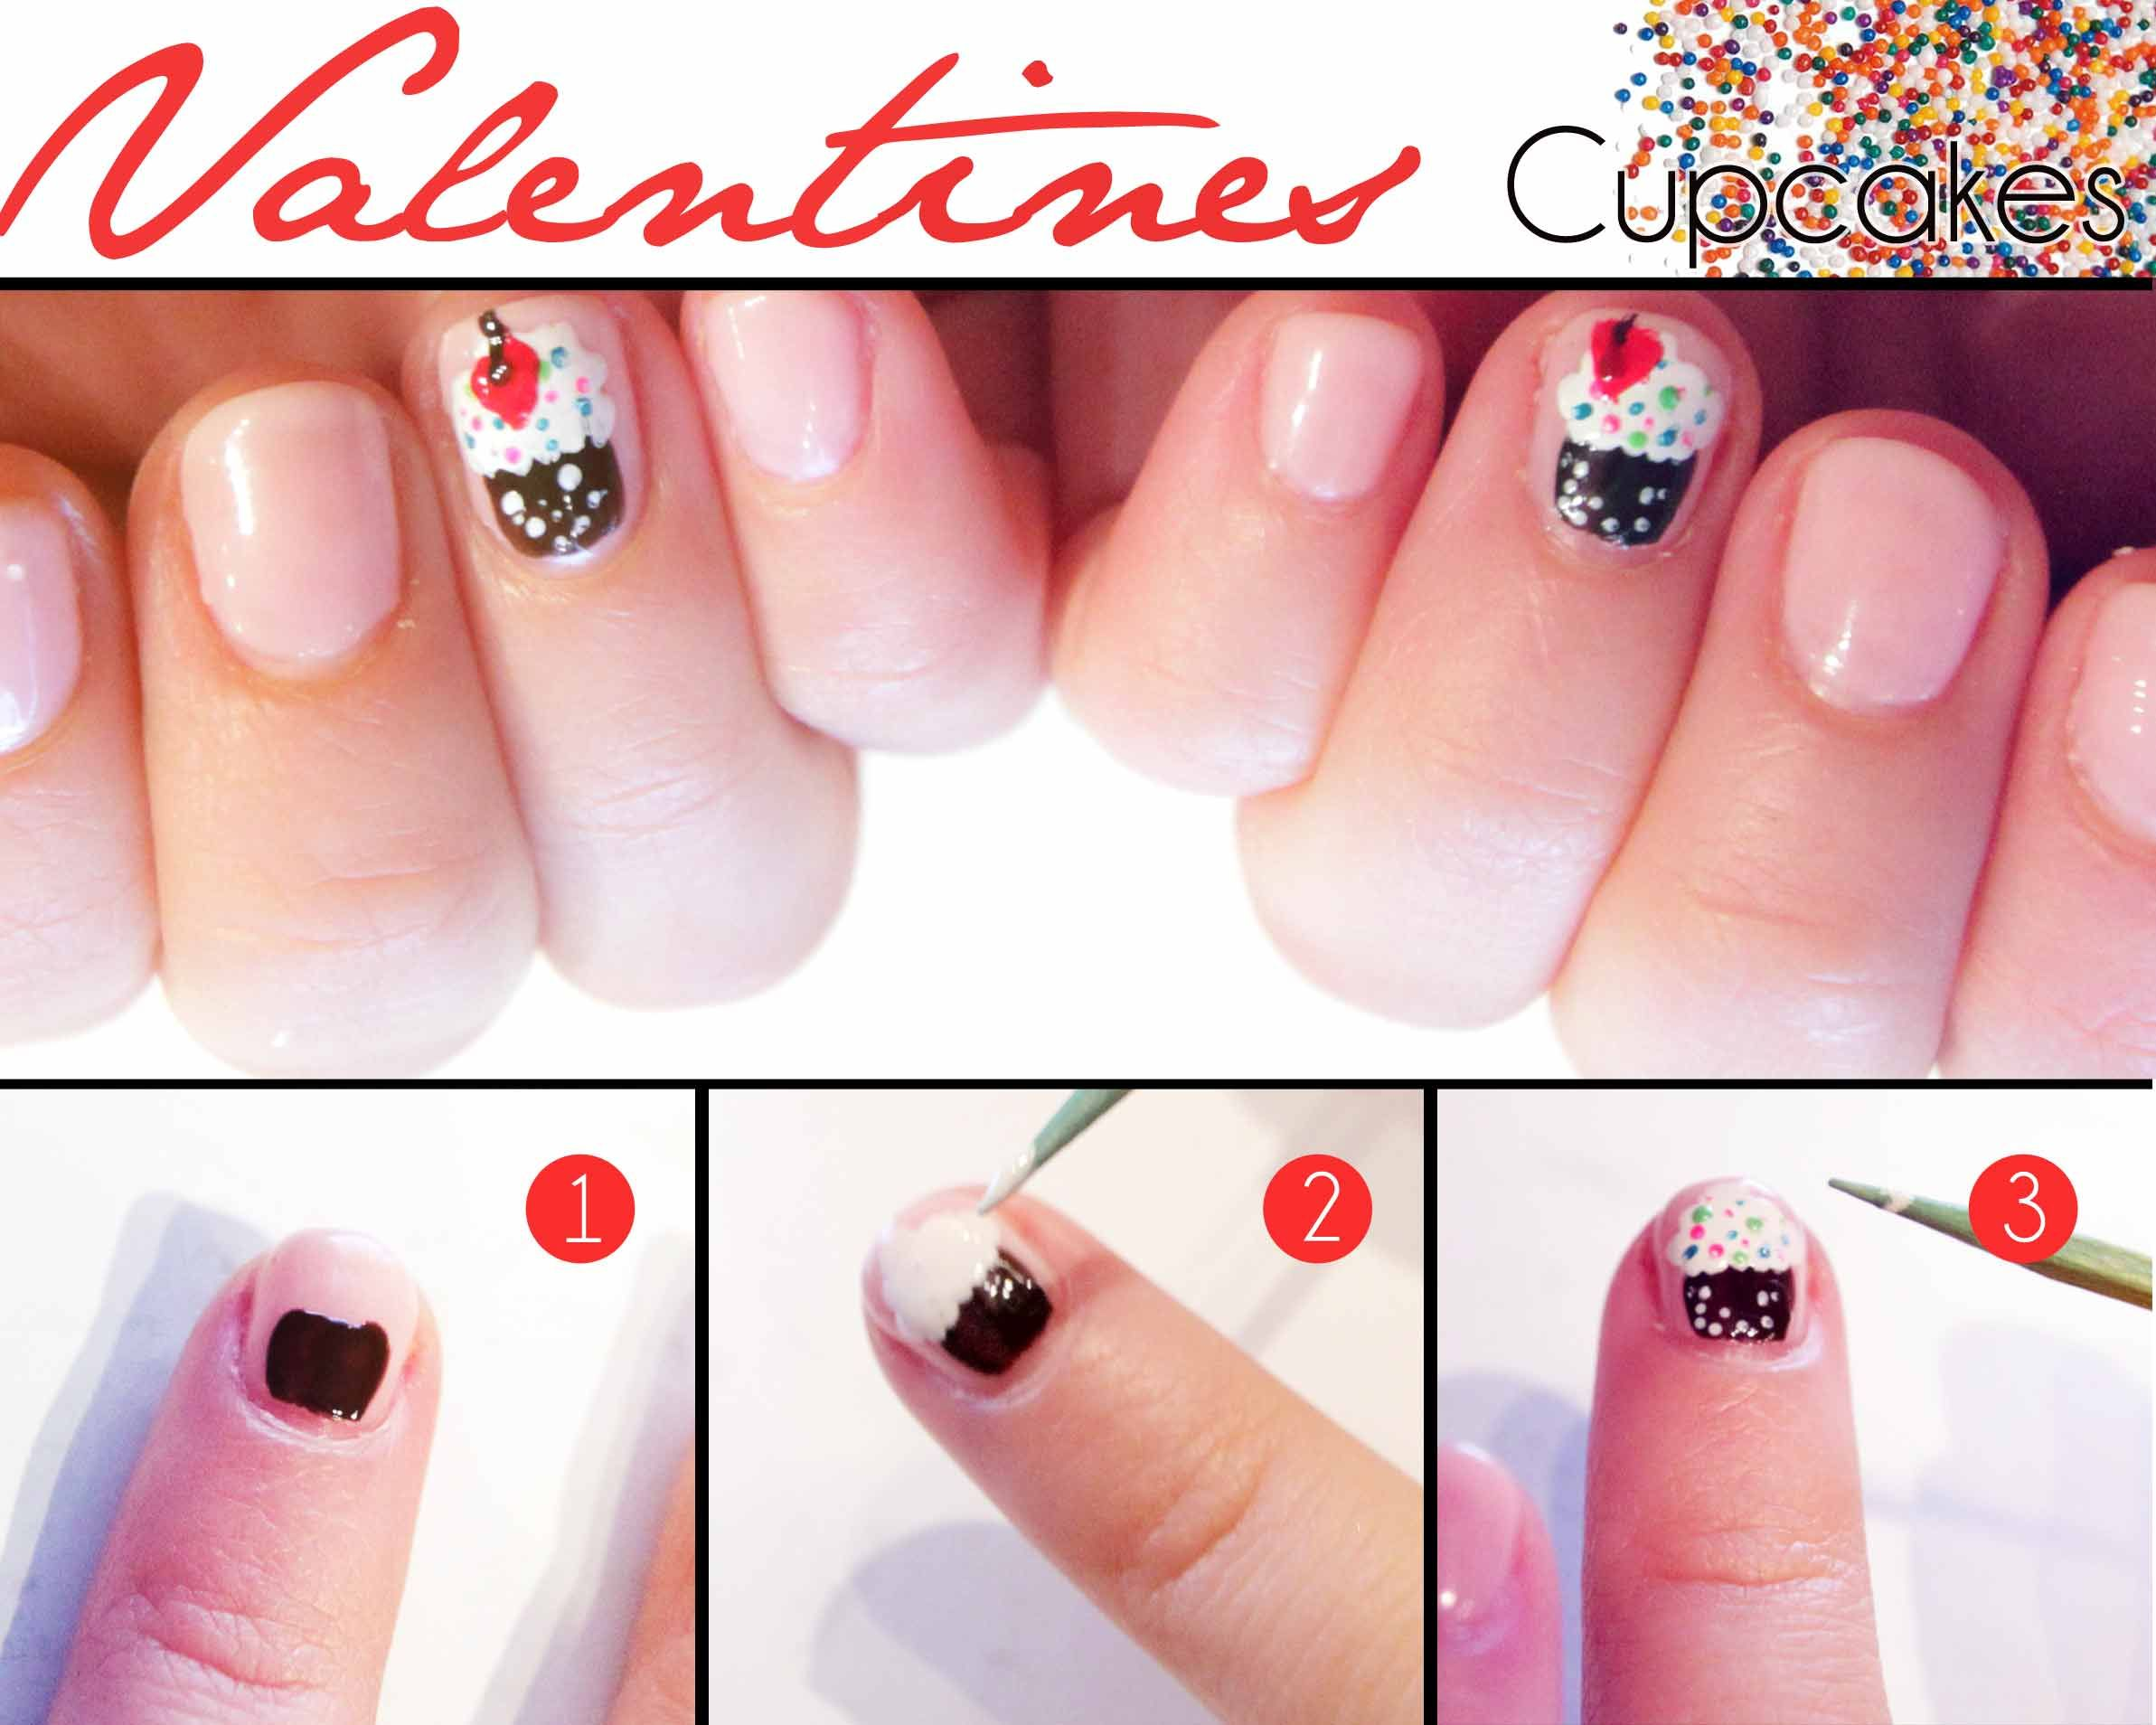 1. Paint the body of the cupcake with a dark brown polish.  2. Use a toothpick or dotting tool to stipple on the icing.  3. With the same toothpick and some dots for the icing and draw a red heart.